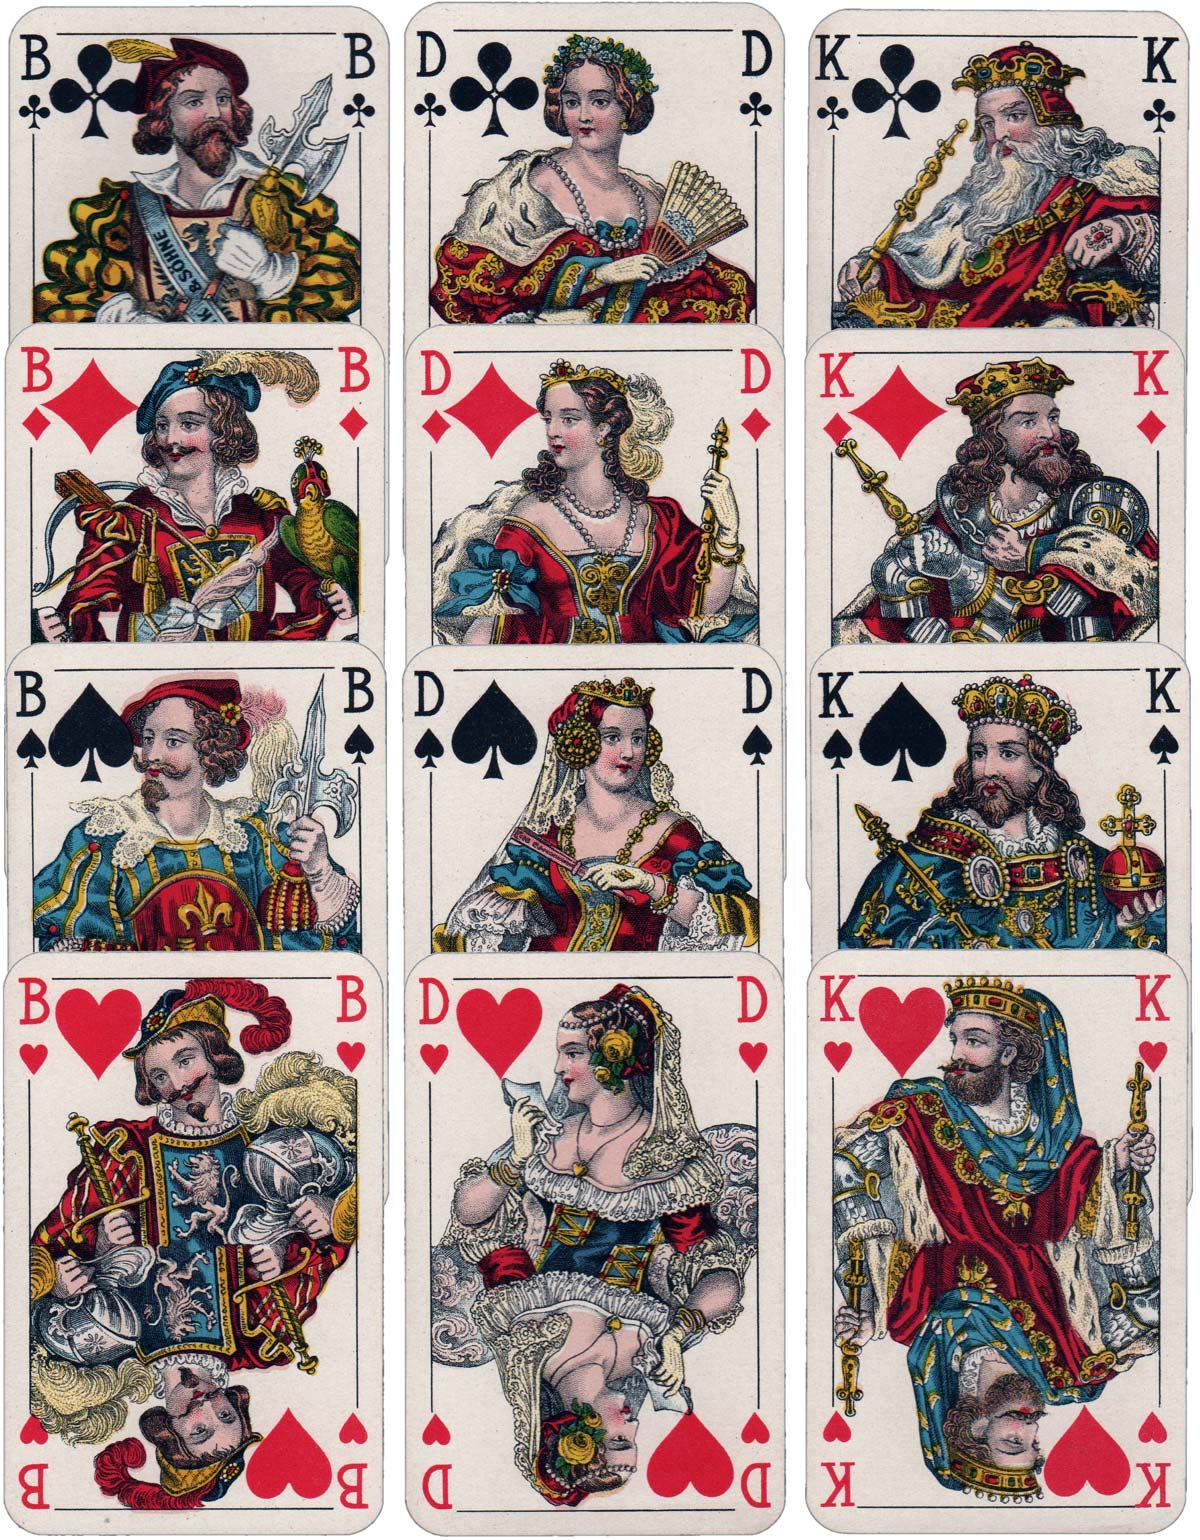 Non-standard French-suited cards published by Ferd Piatnik & Sõhne, Vienna, c.1940